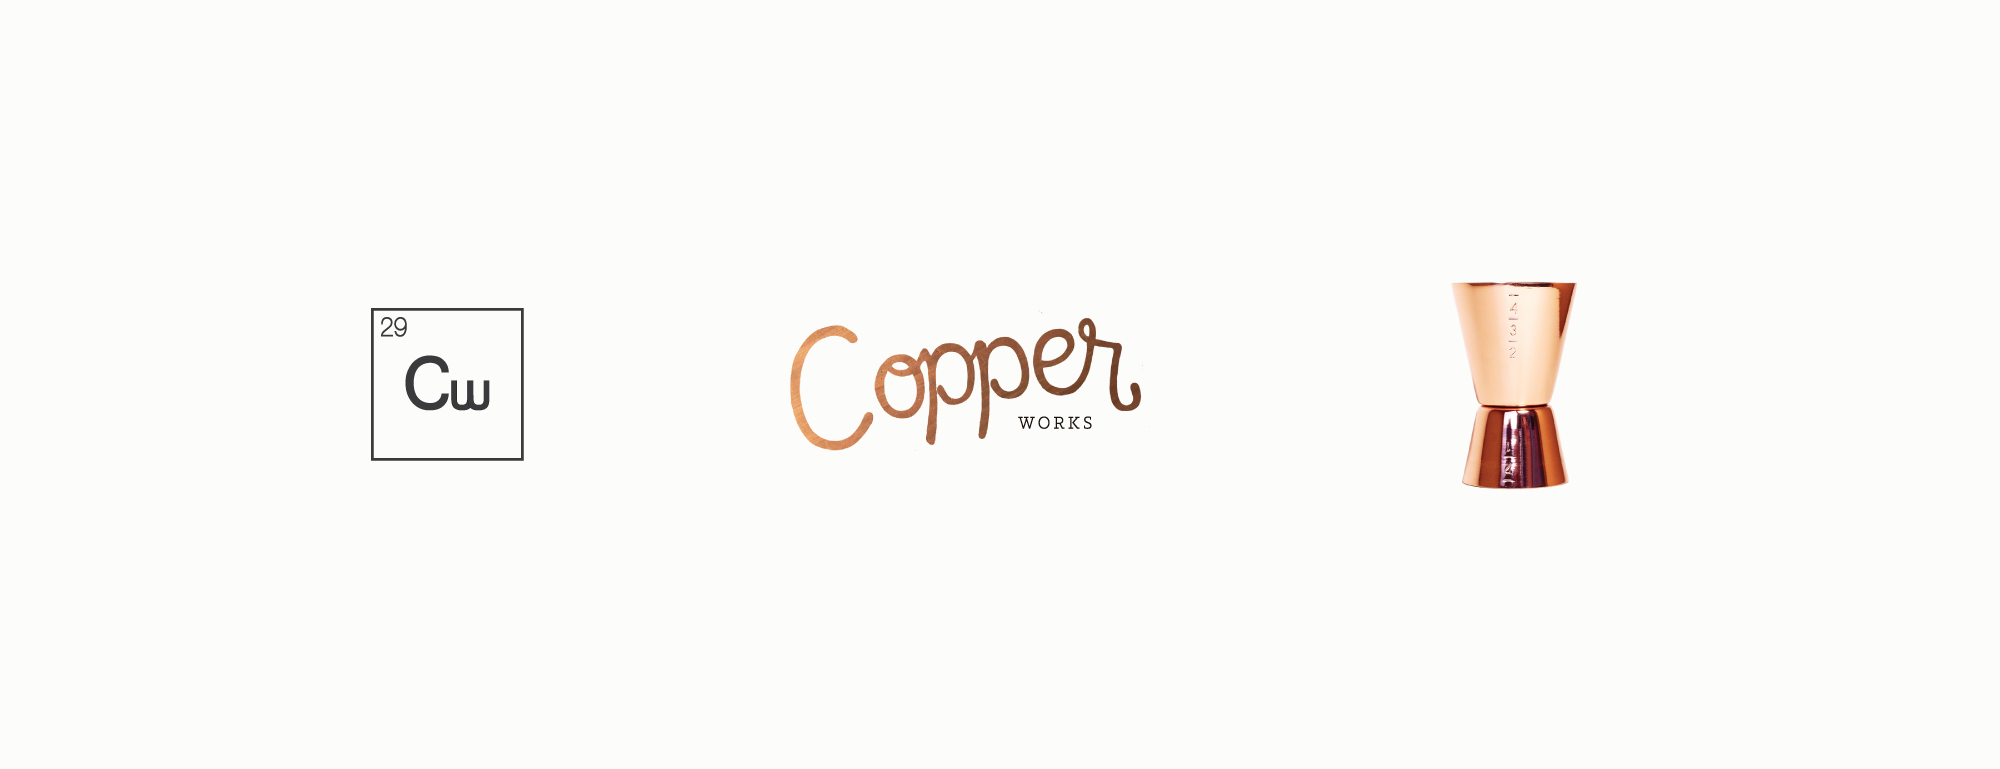 Amarie Design Co. Lifestyle Brand Identity Design for Copper Works Goods Co.